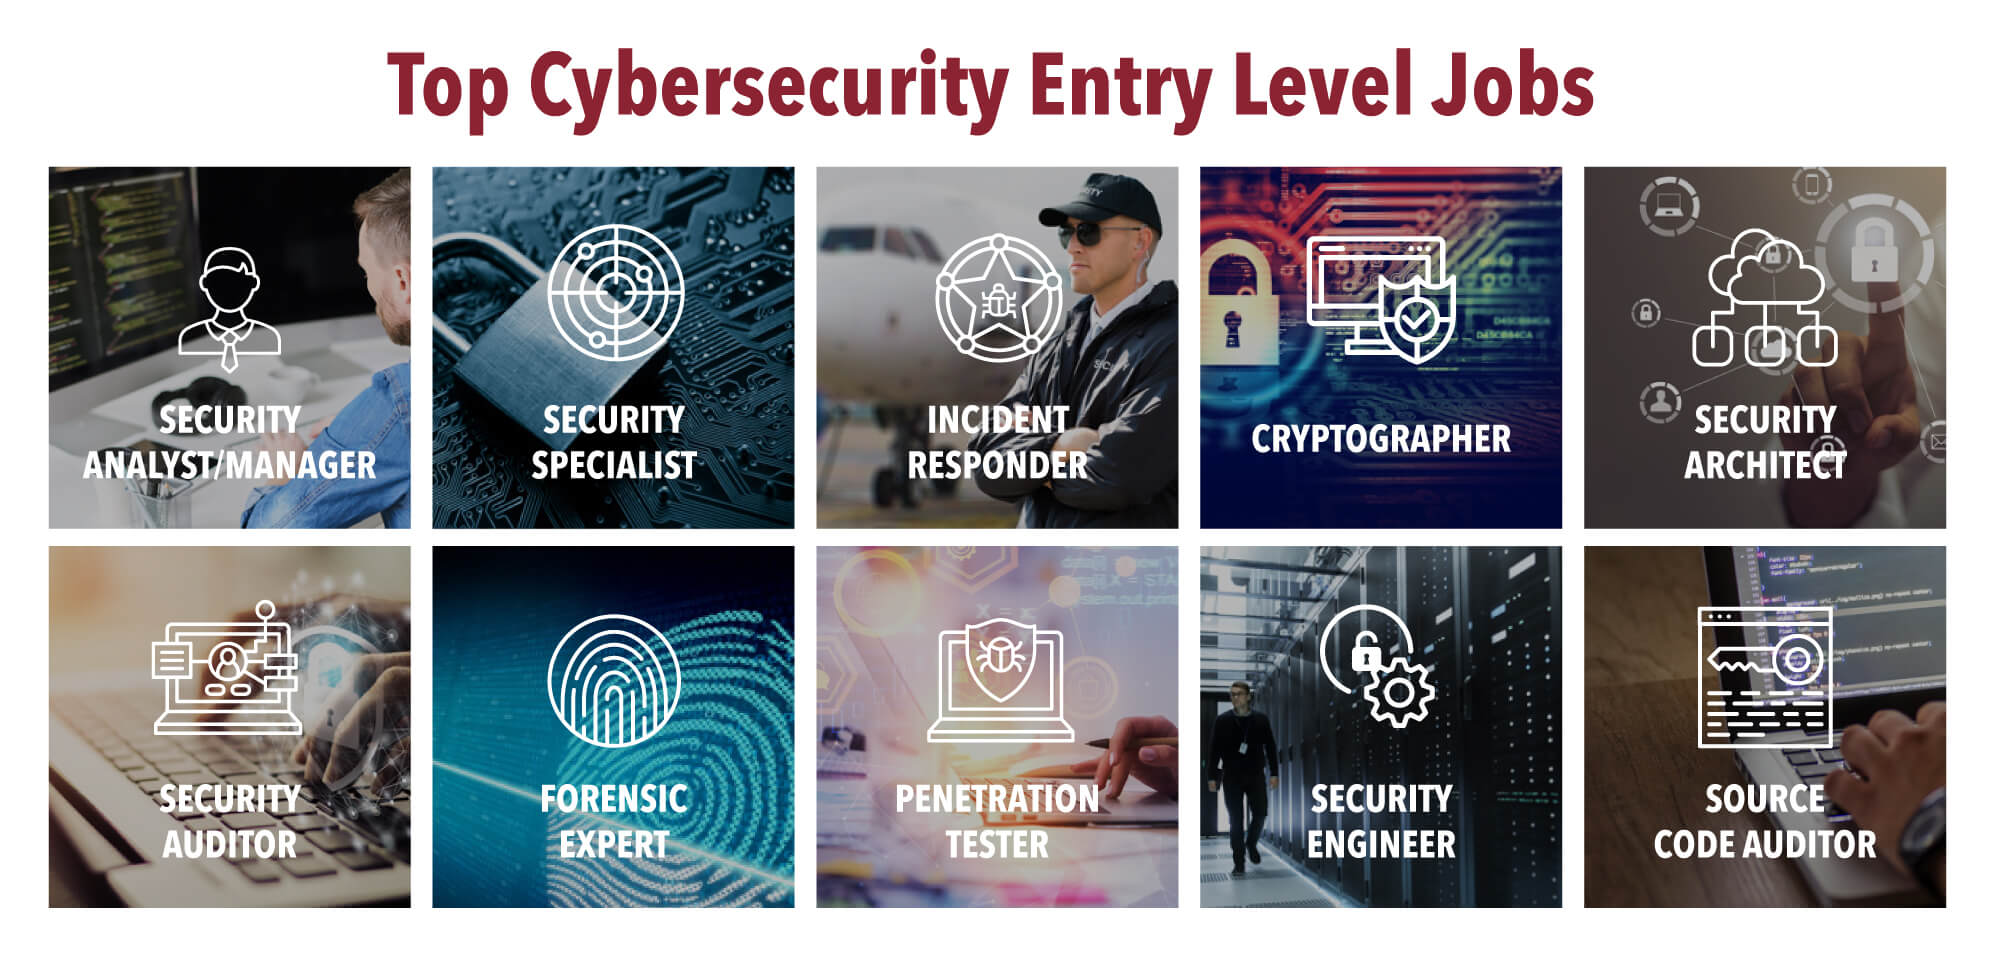 The top ten entry-level cybersecurity jobs